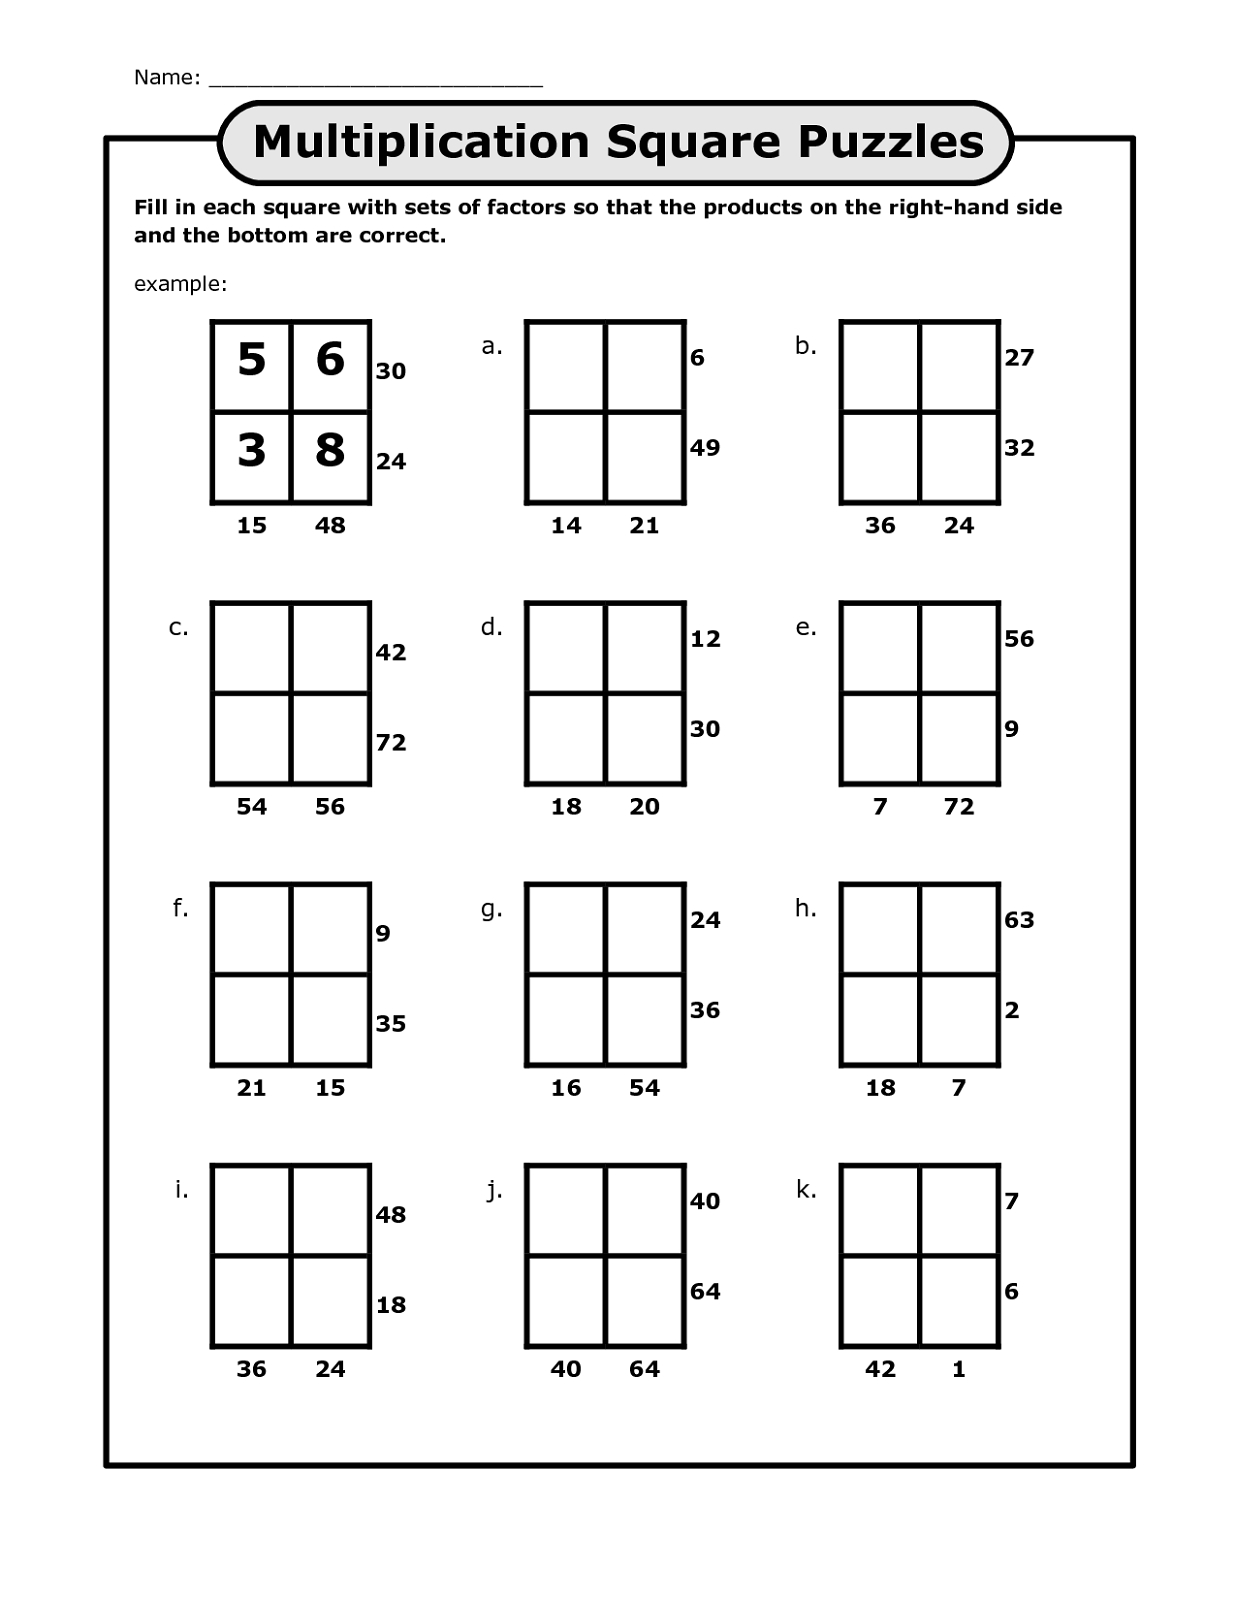 Math Puzzles Printable For Learning | Activity Shelter - Printable Multiplication Puzzle